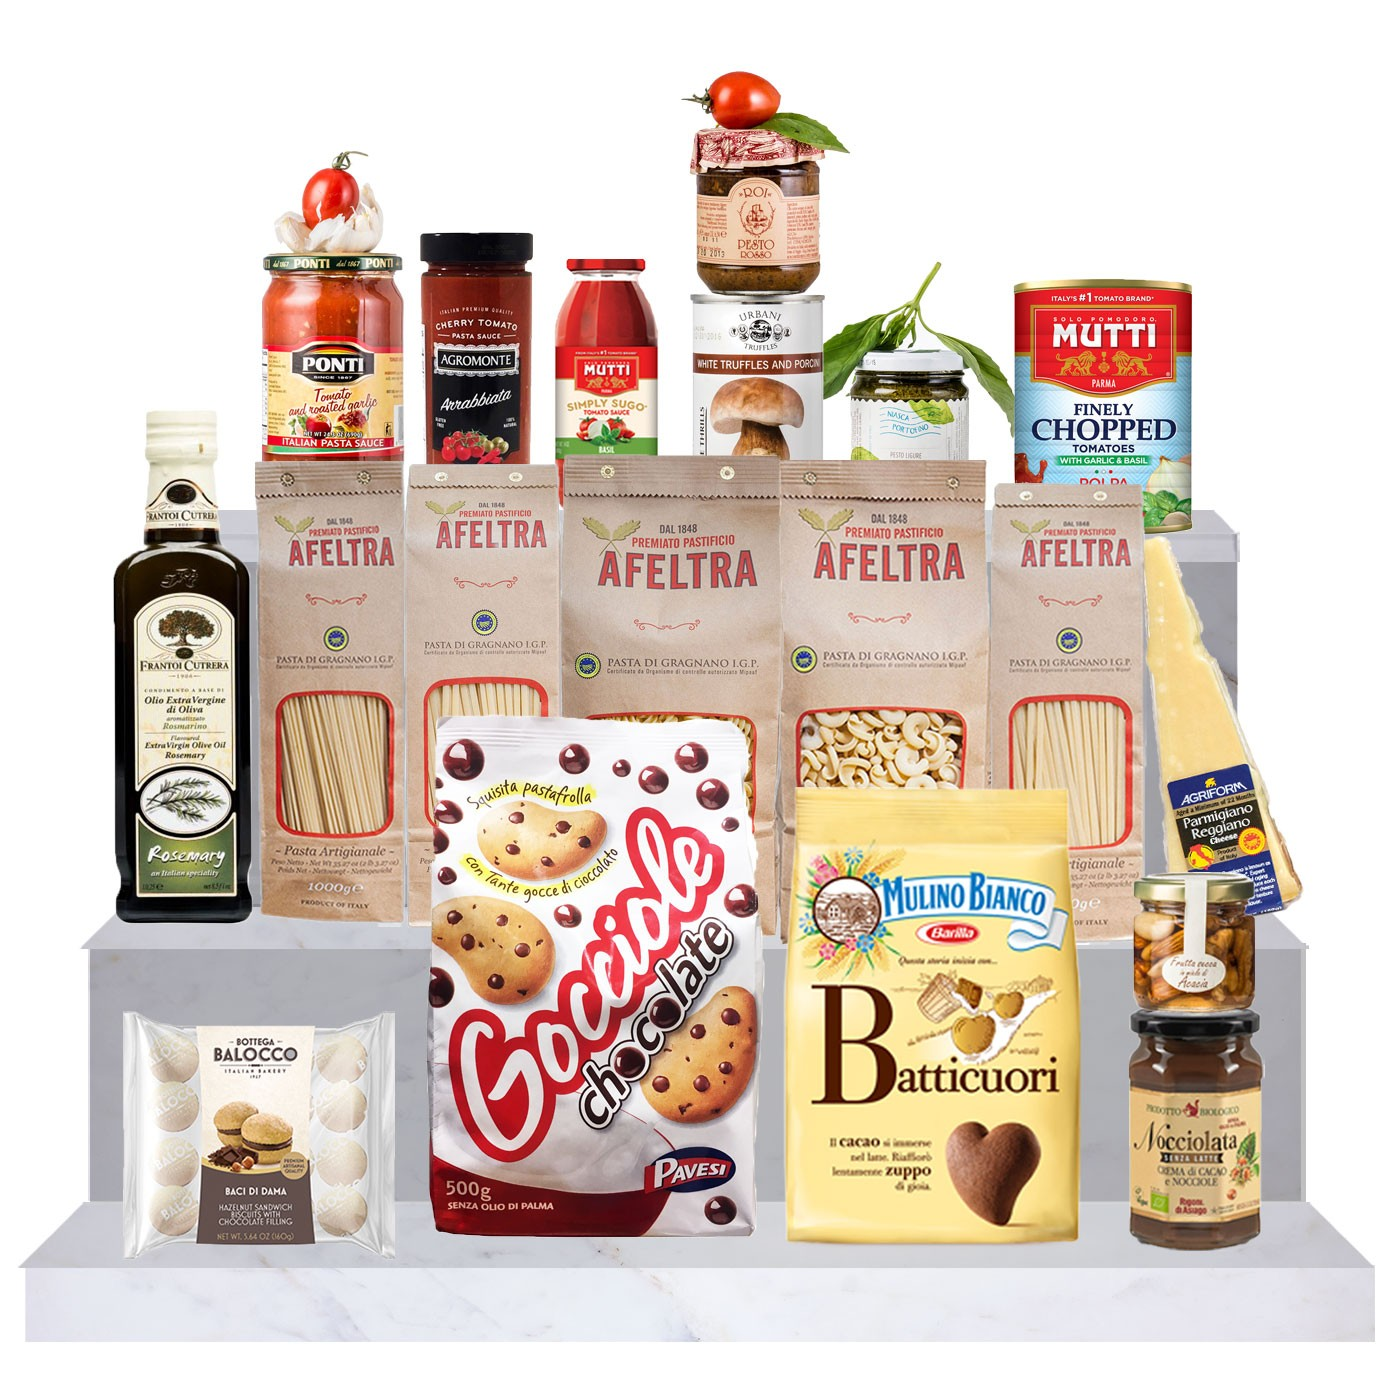 Pantry for the Sweets Lover